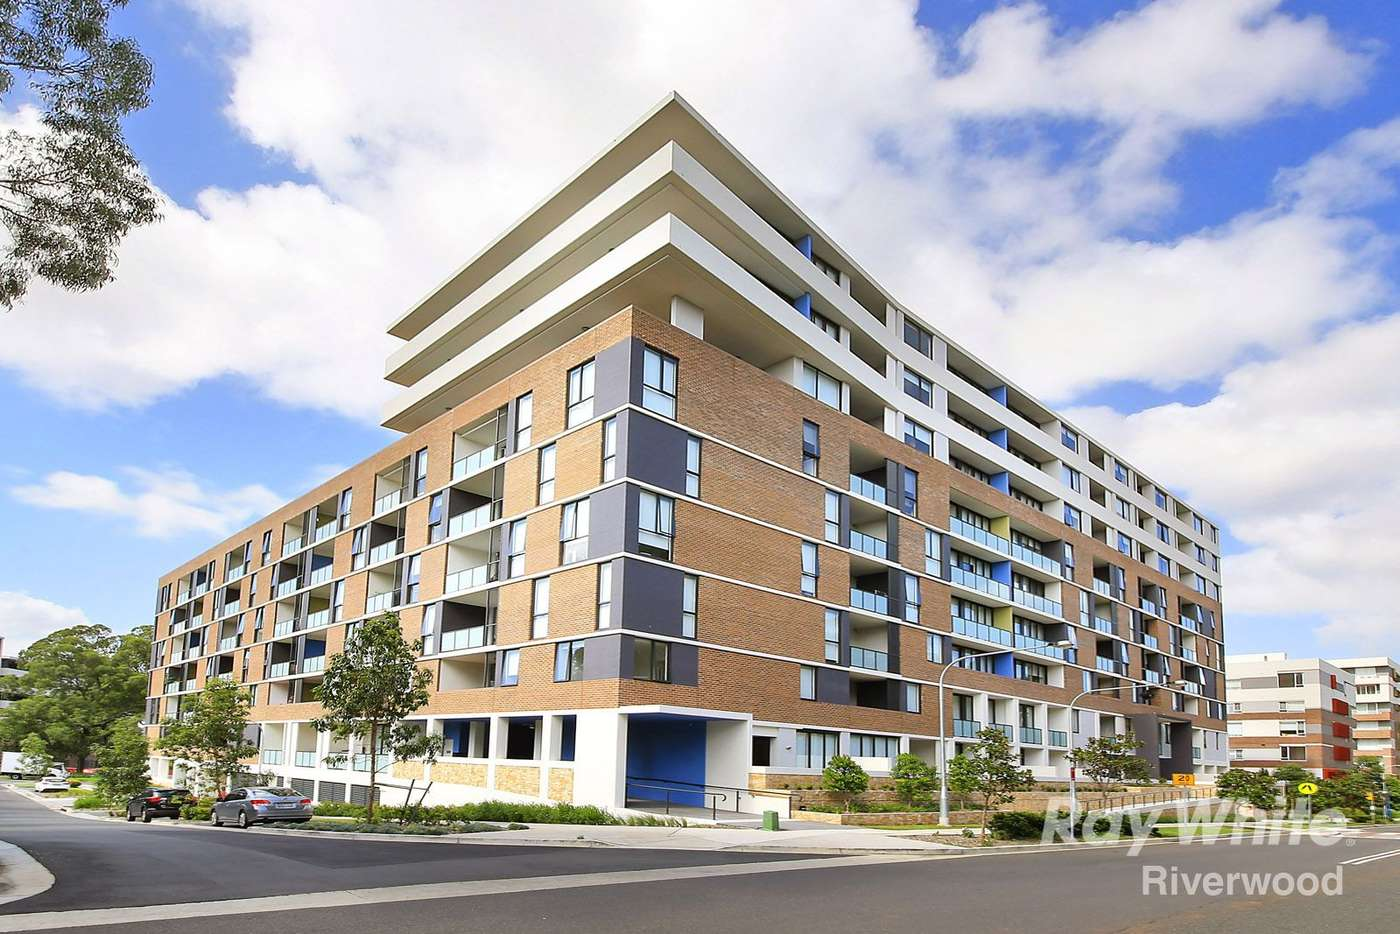 Main view of Homely apartment listing, 313/7 Washington Avenue, Riverwood NSW 2210